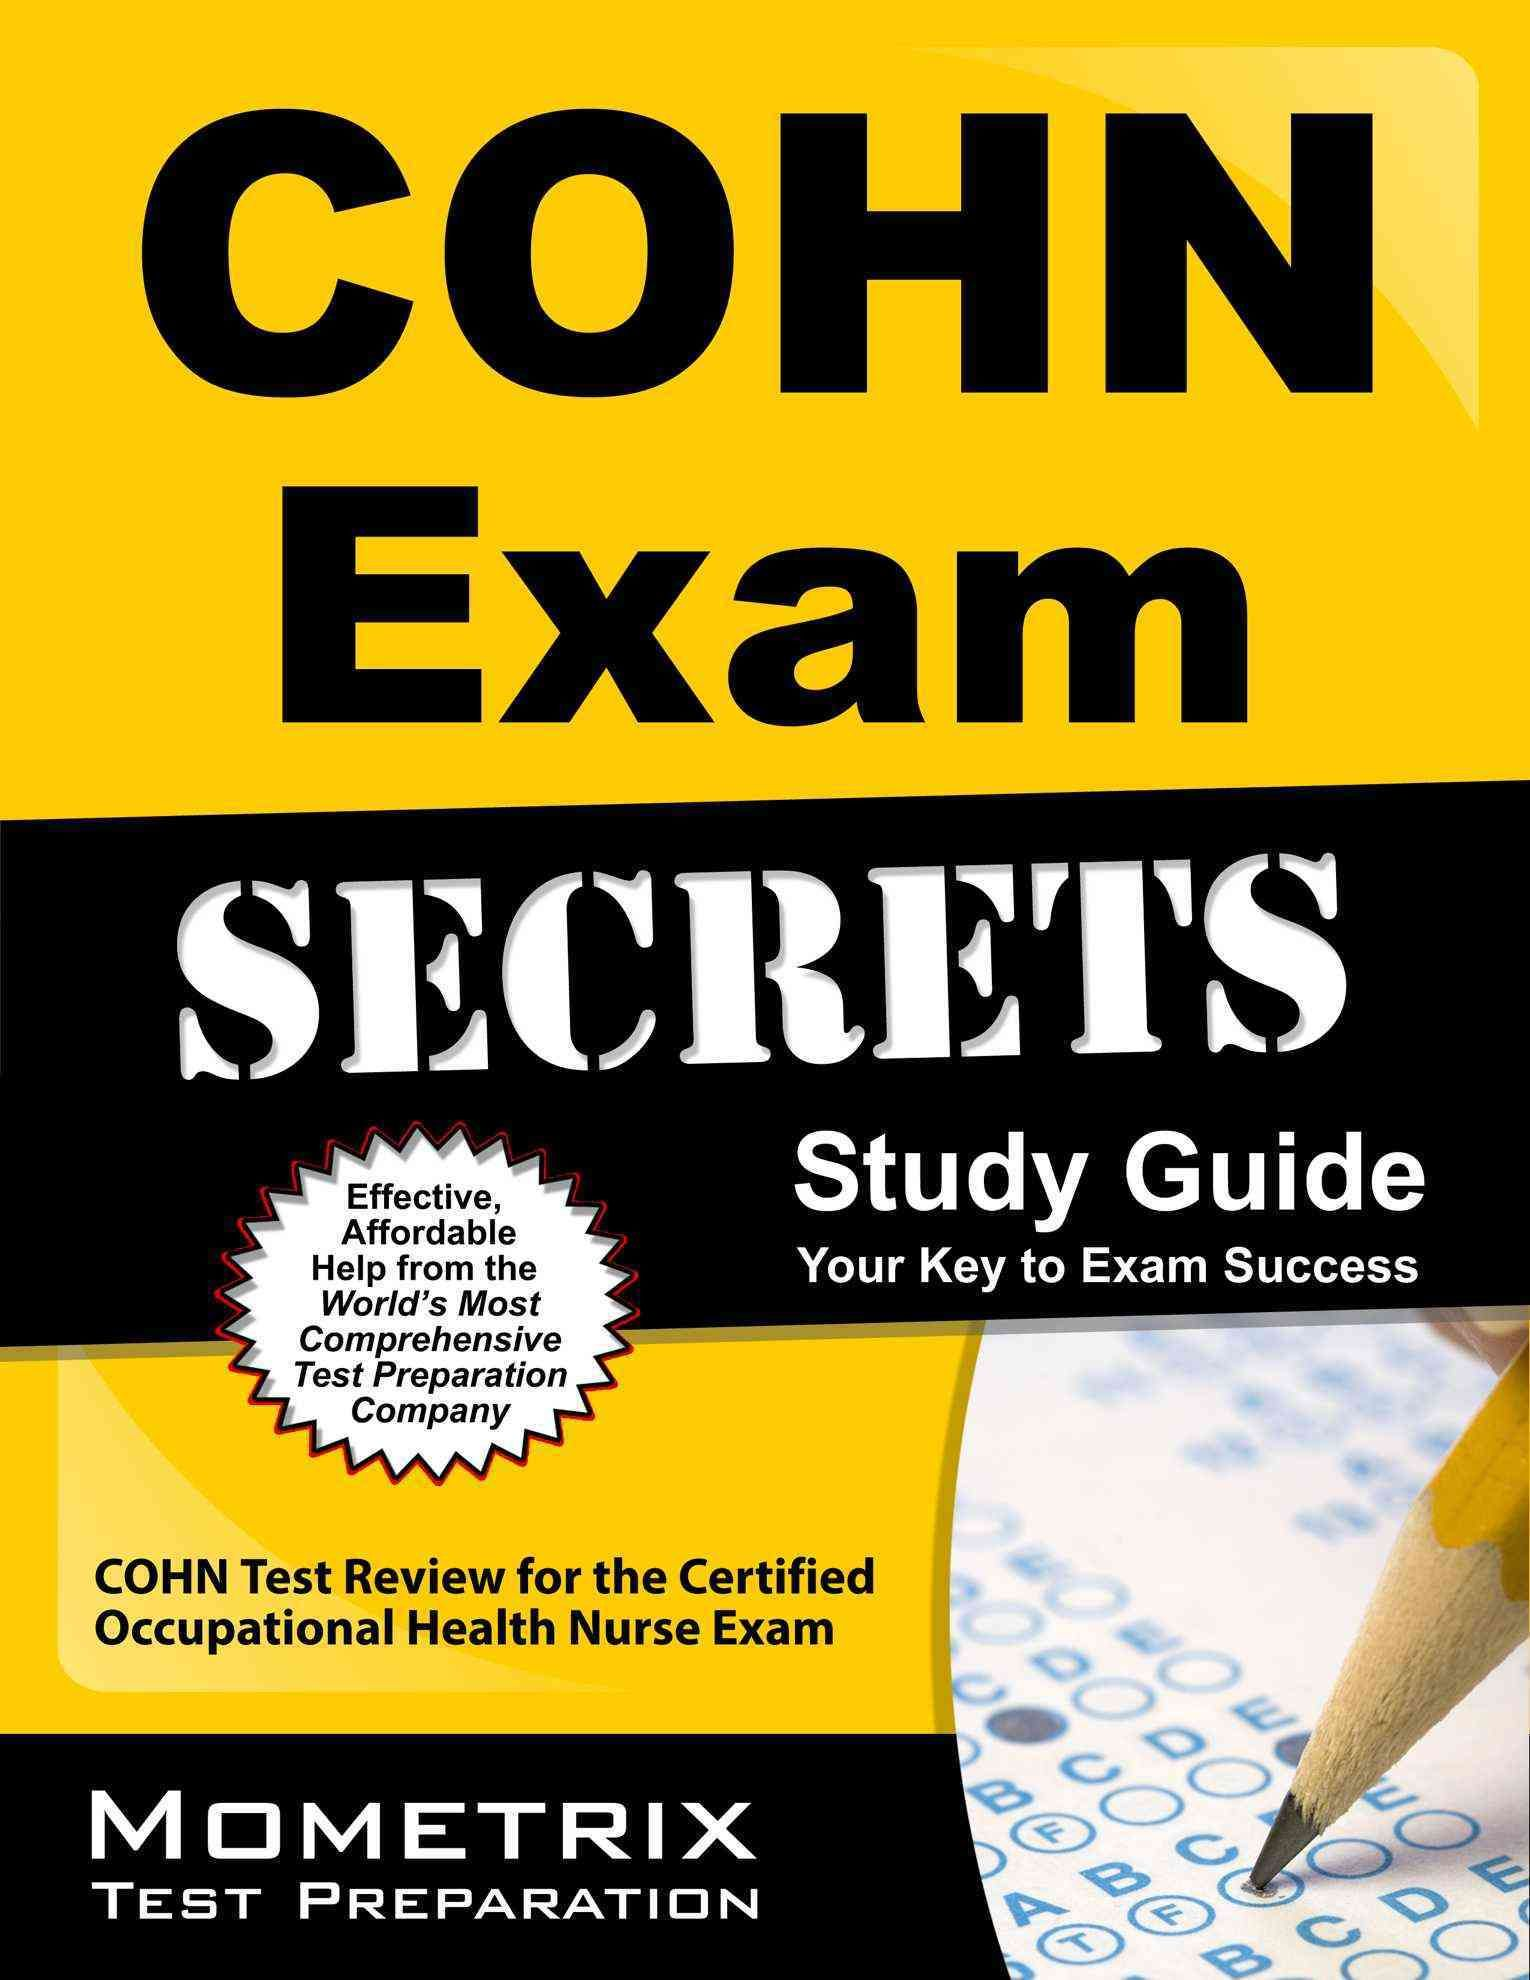 Cohn exam secrets cohn test review for the certified occupational cohn exam secrets cohn test review for the certified occupational health nurse exam xflitez Image collections